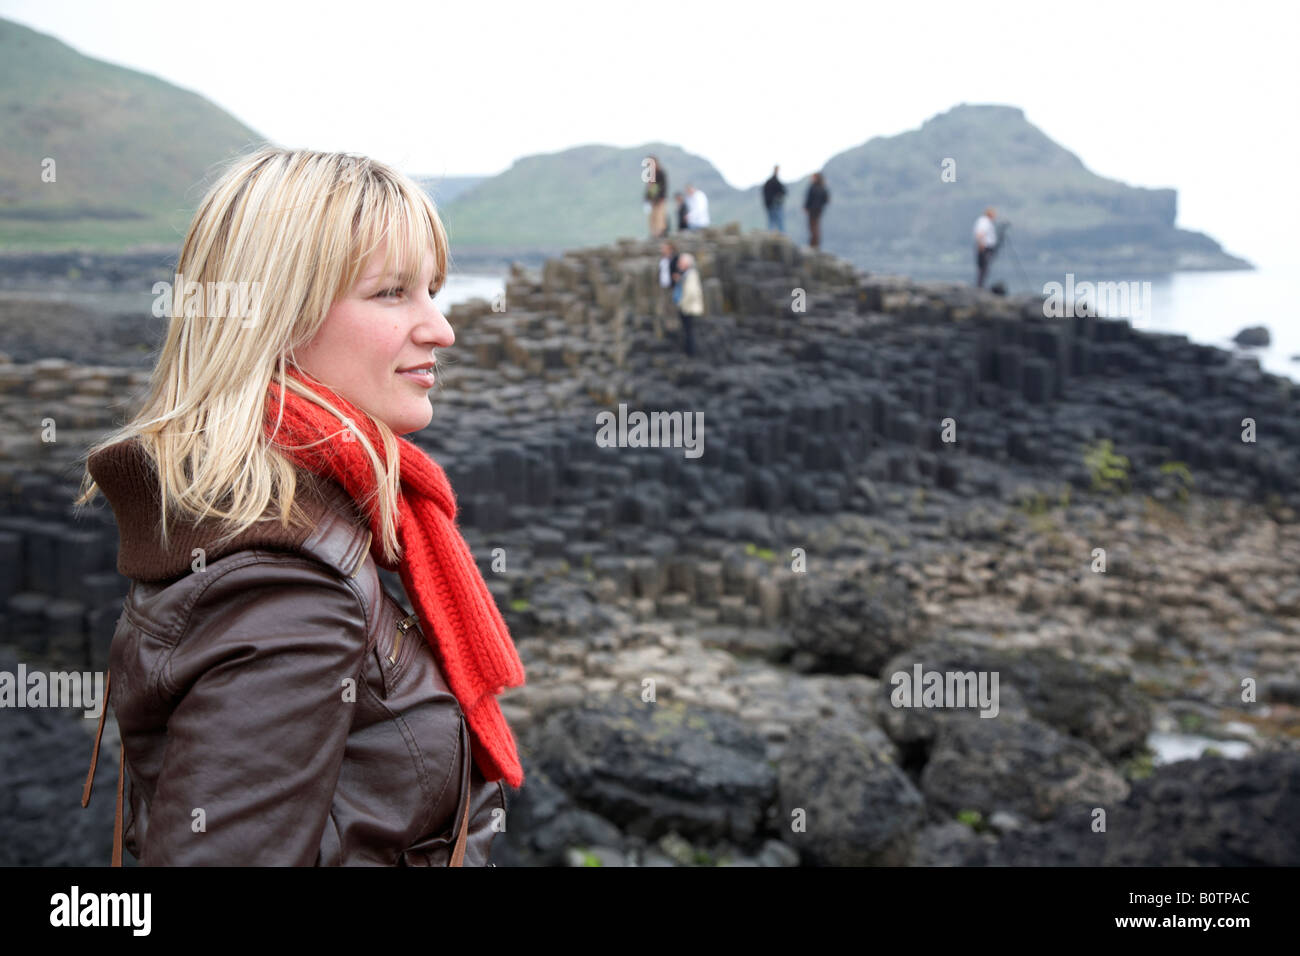 blonde north american female caucasian tourist wearing jeans red scarf and leather jacket standing on overcast day Stock Photo